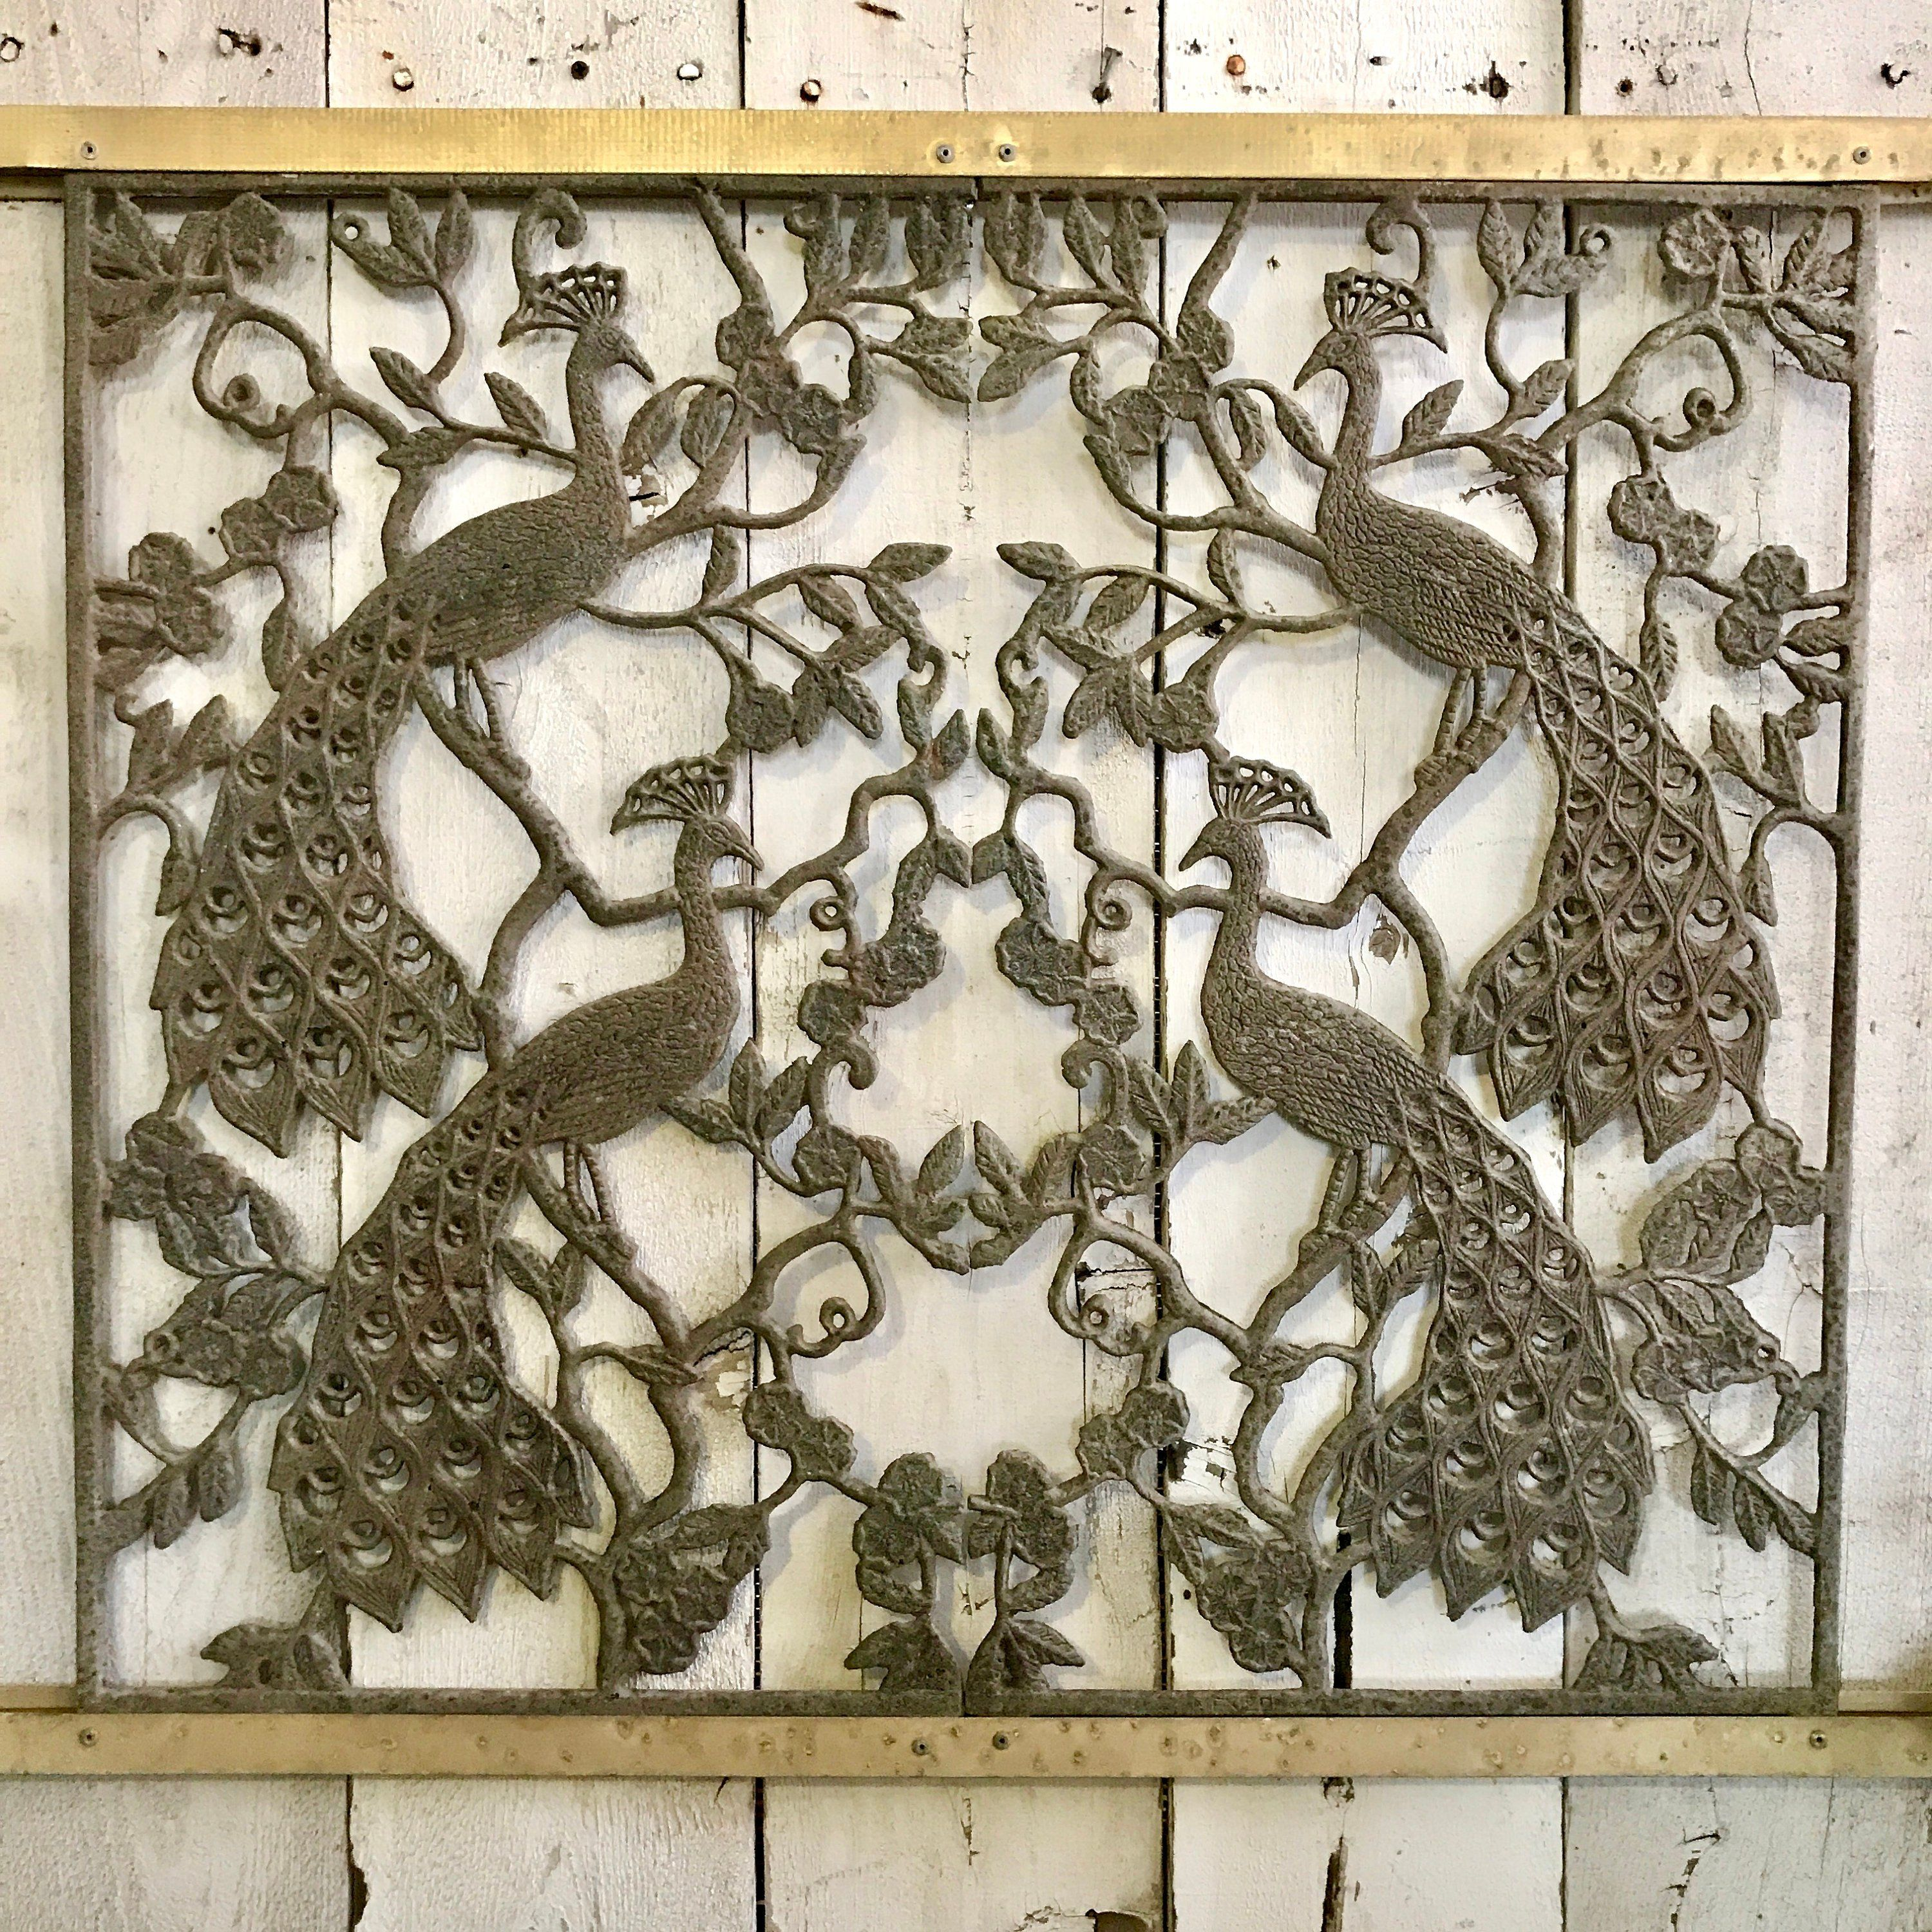 Vintage peacock metal screen door salvage panel cast metal peacock